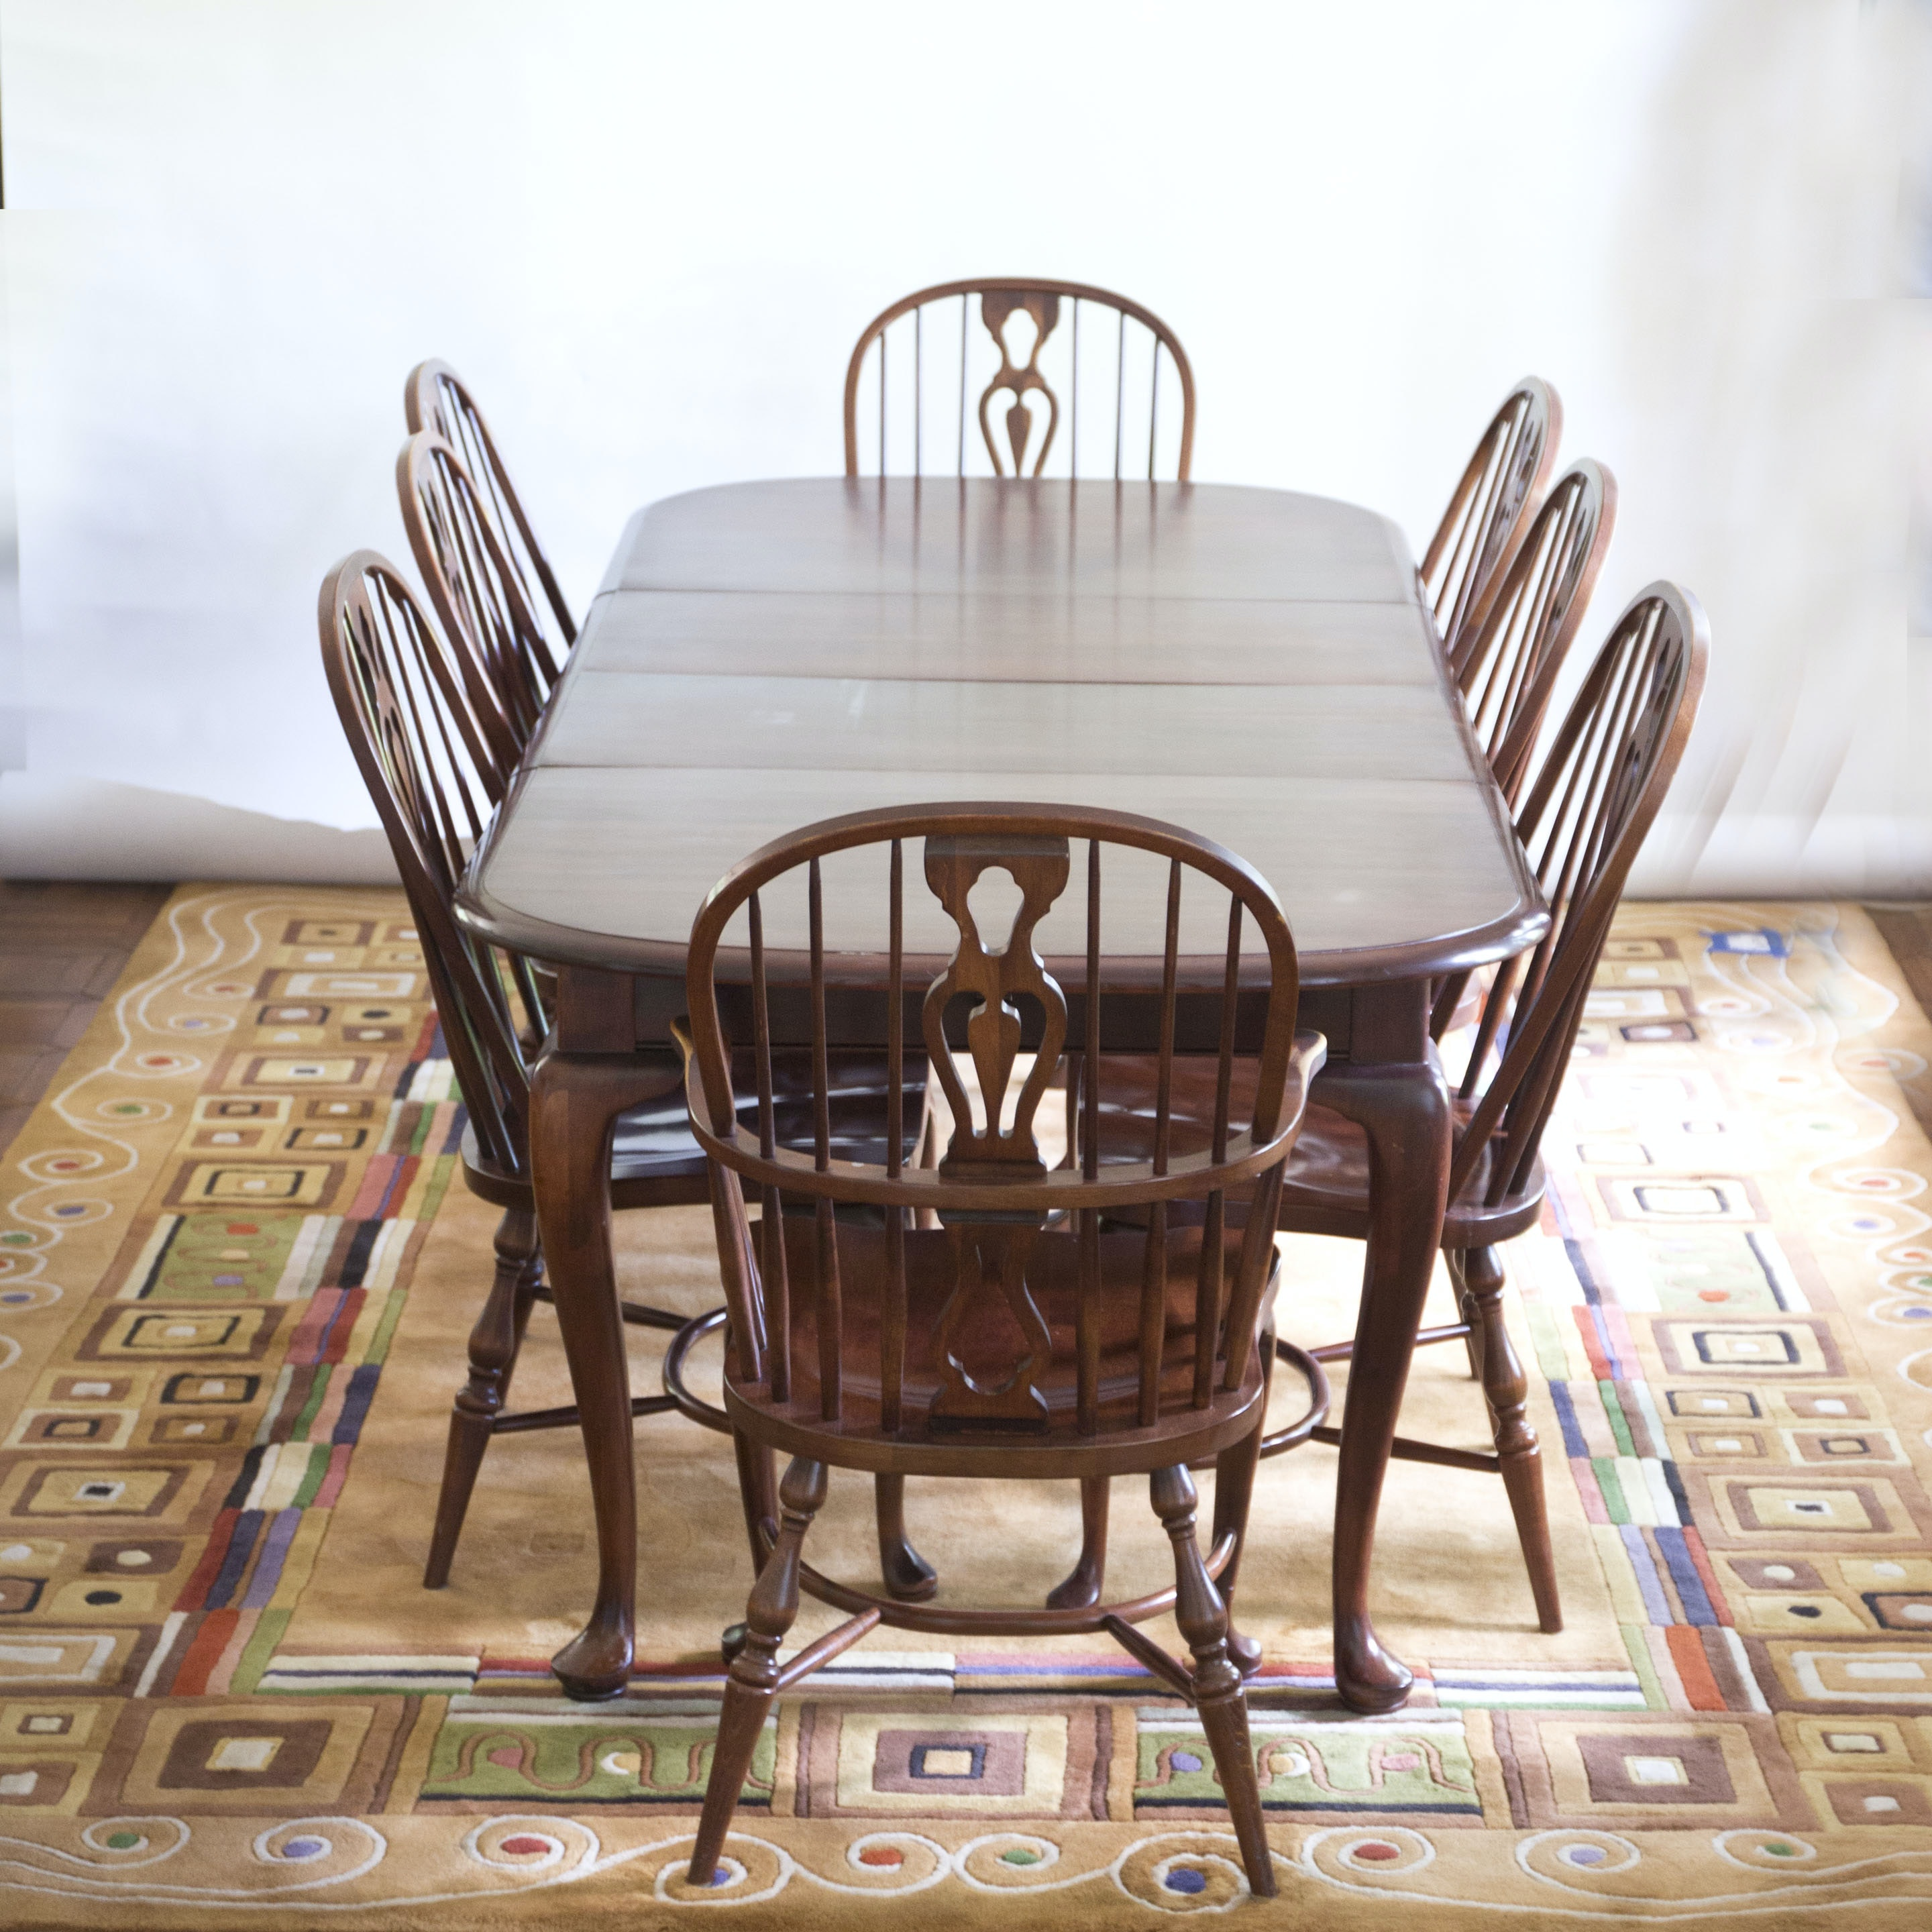 Maple Kitchen Table With Chair And Bench Ebth: Solid Maple Dining Table And Chairs By E.R. Buck : EBTH